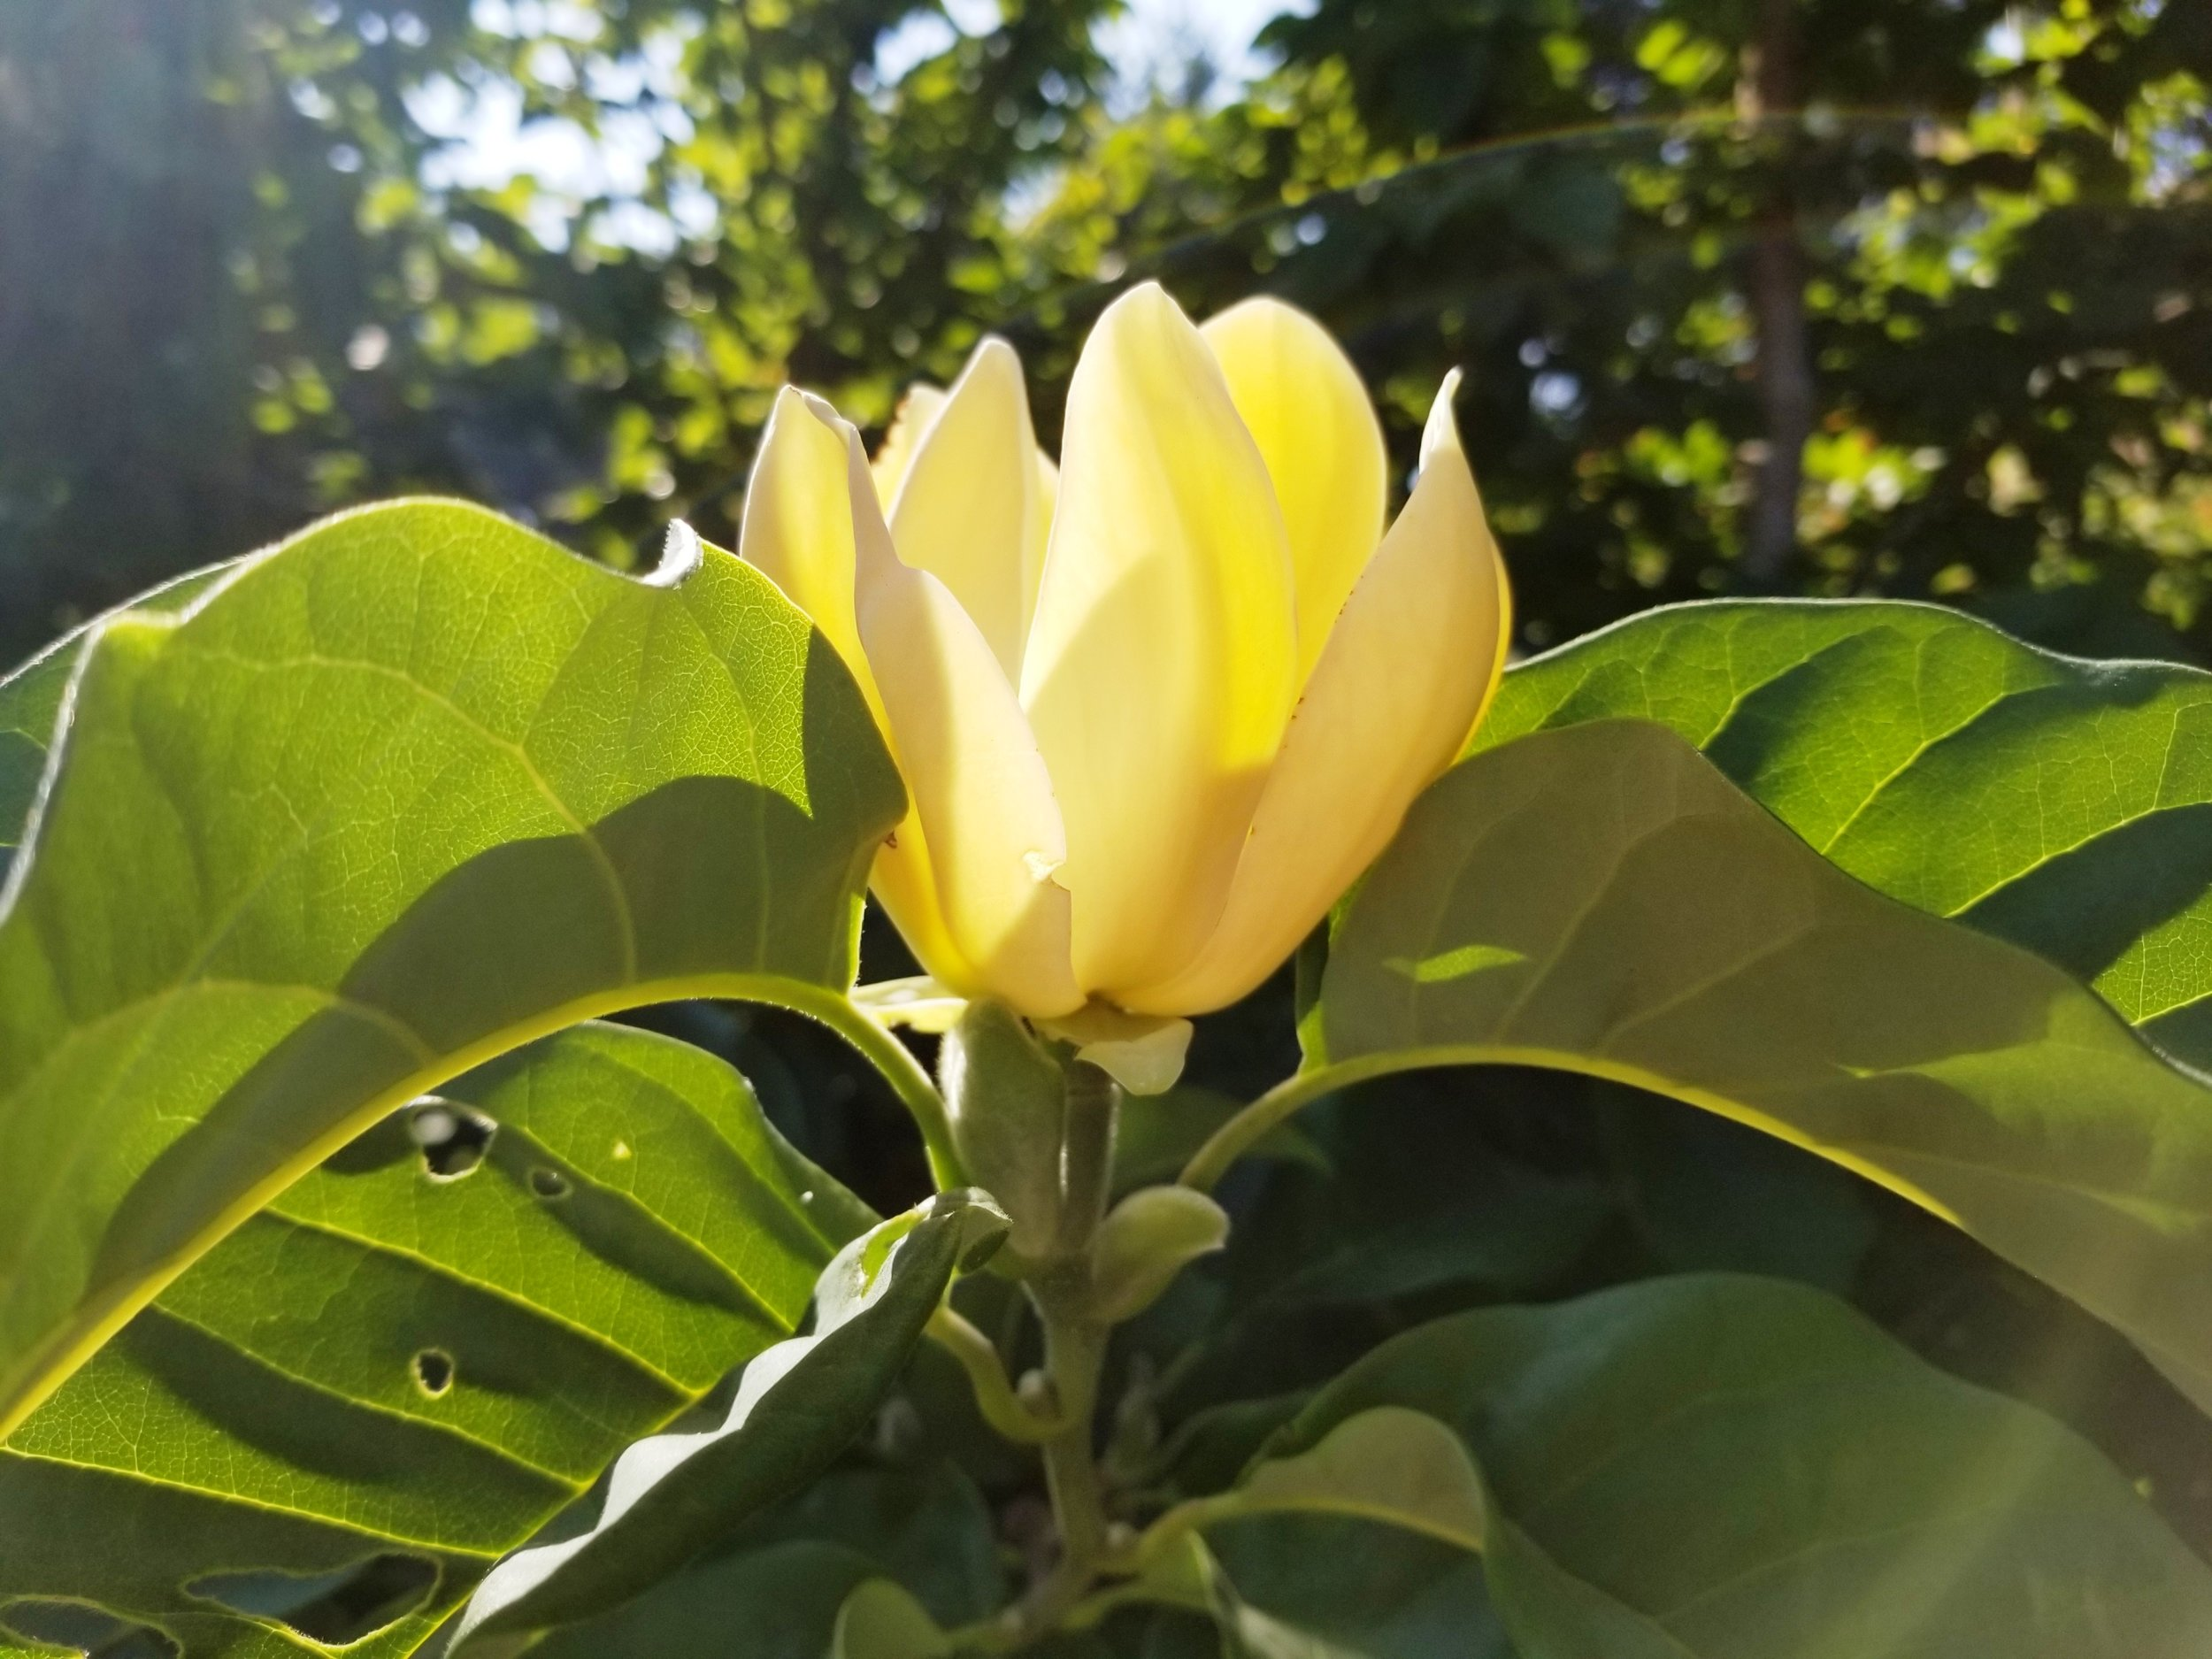 Magnolia 'Yellow Bird' Flower.jpg